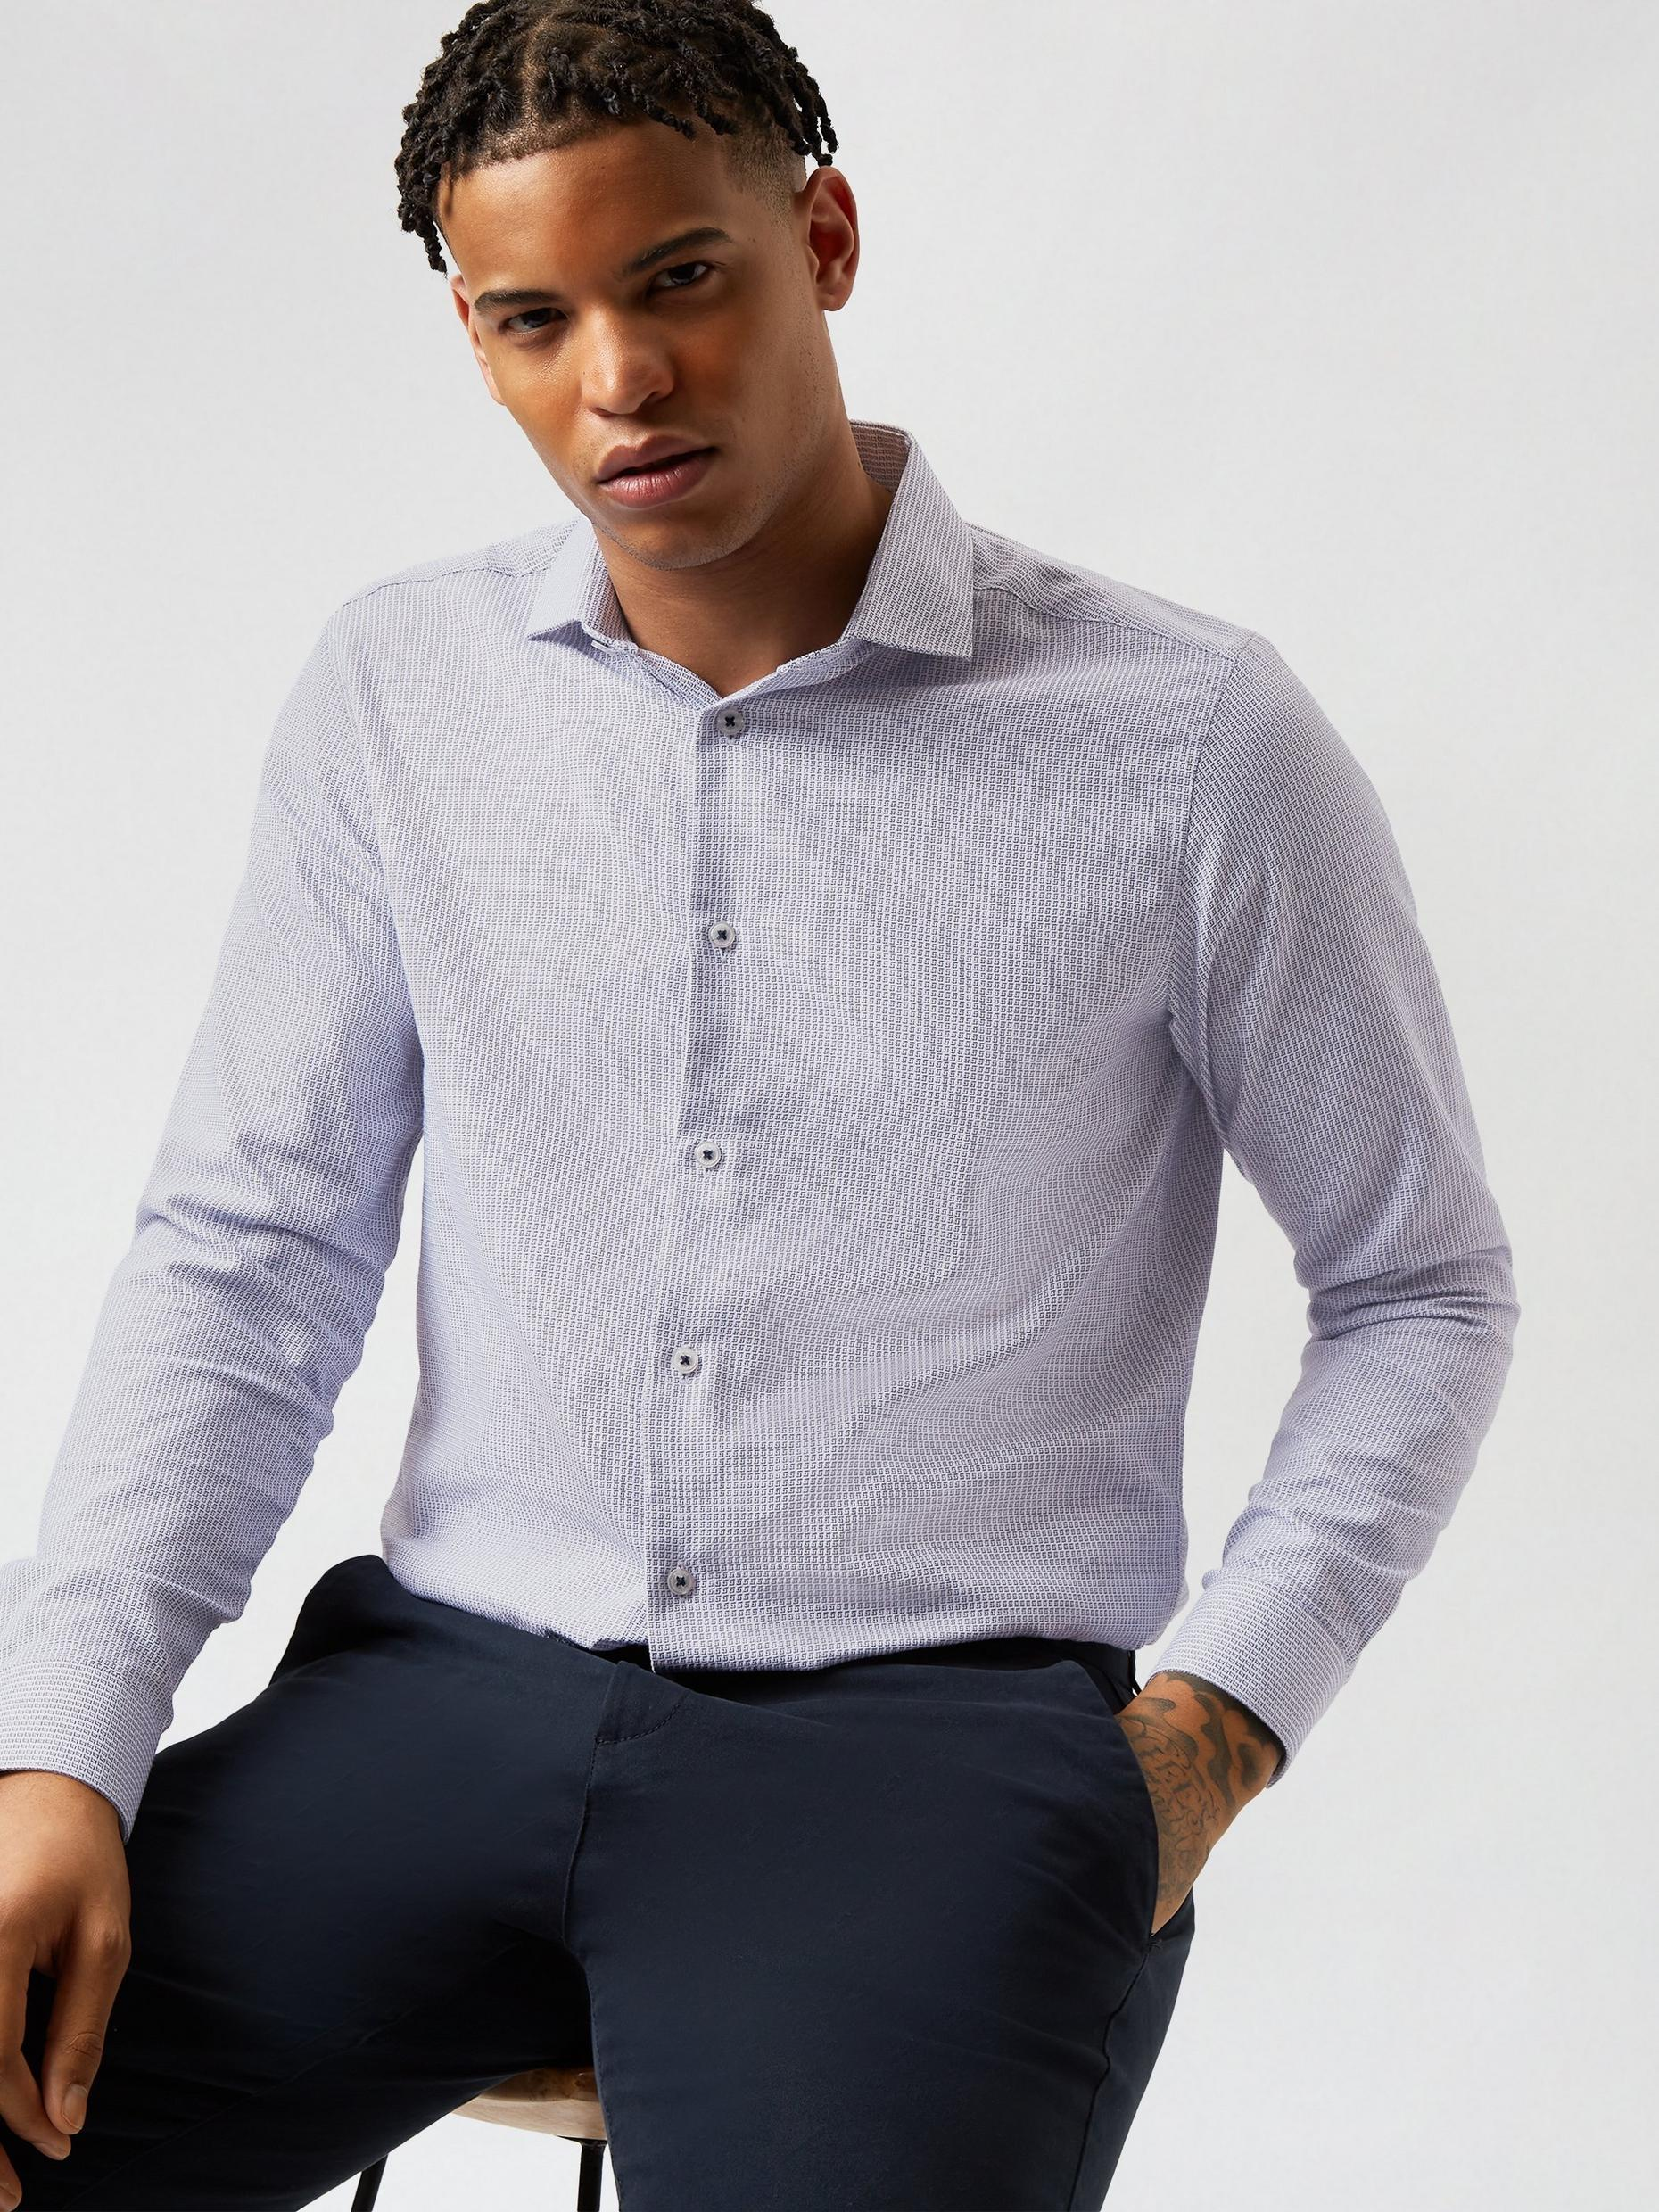 Navy and White Square Dobby Tailored Fit Shirt